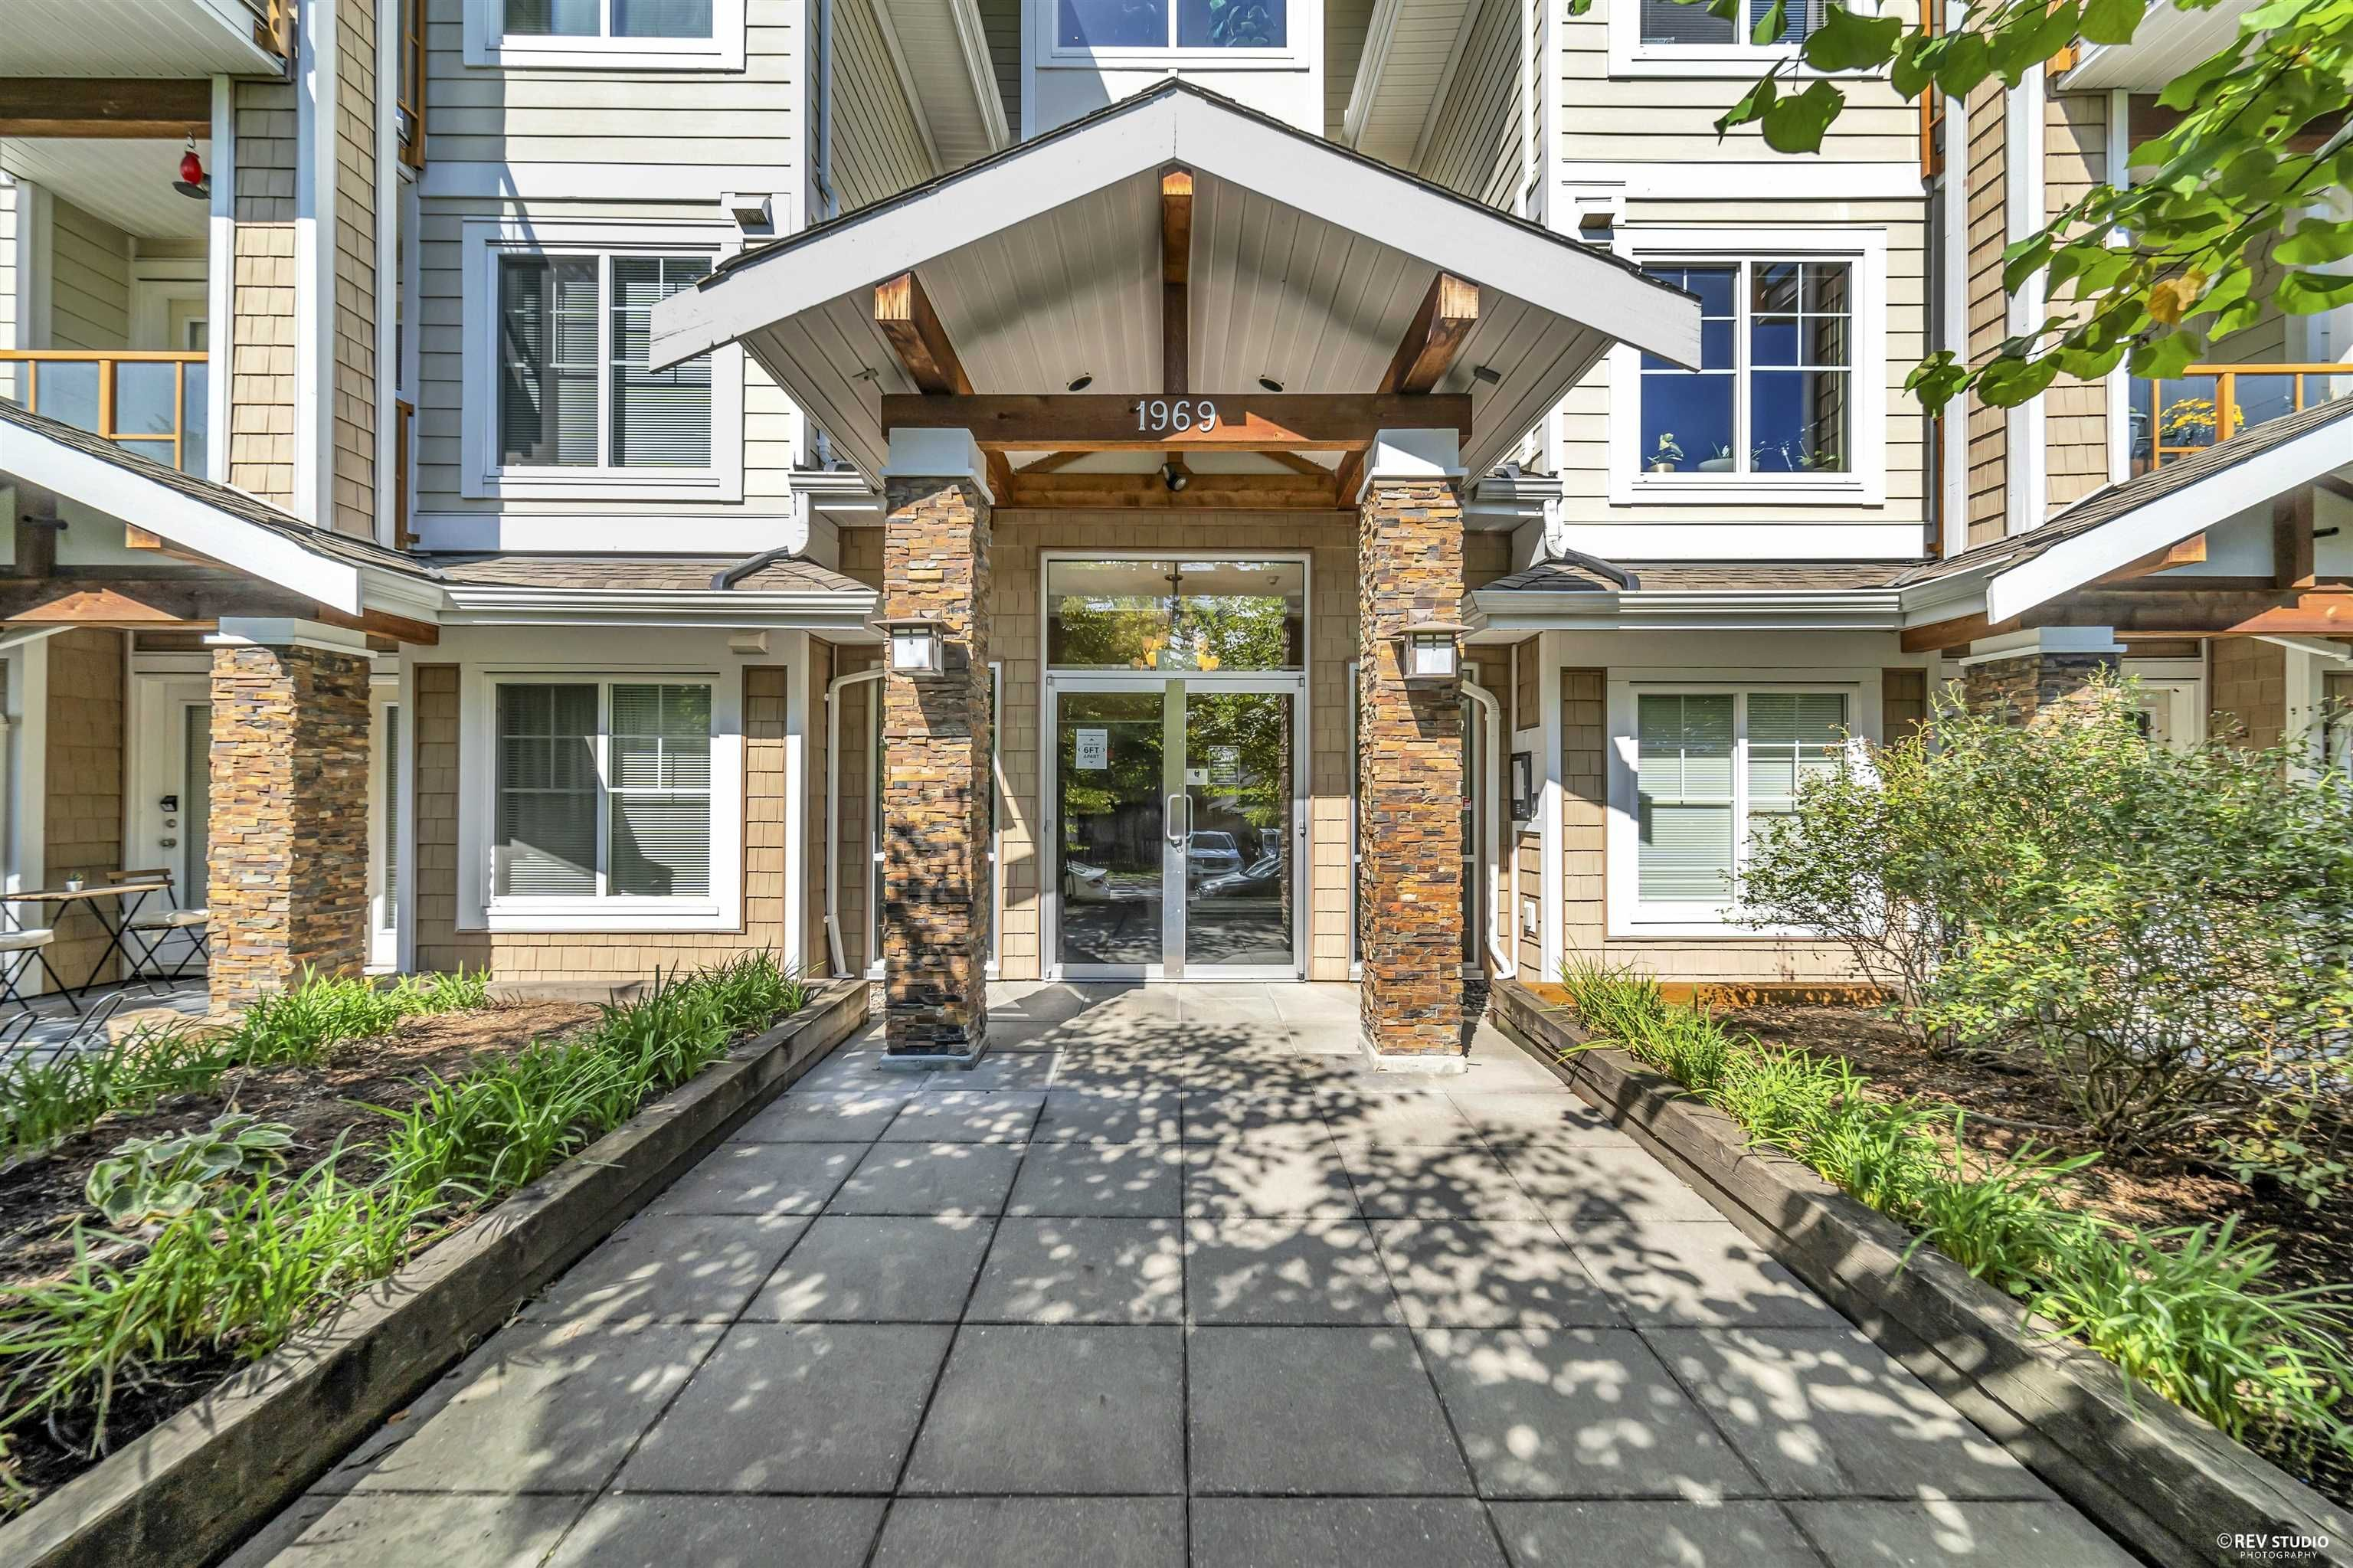 """Main Photo: 412 1969 WESTMINSTER Avenue in Port Coquitlam: Glenwood PQ Condo for sale in """"The Saphire"""" : MLS®# R2616999"""